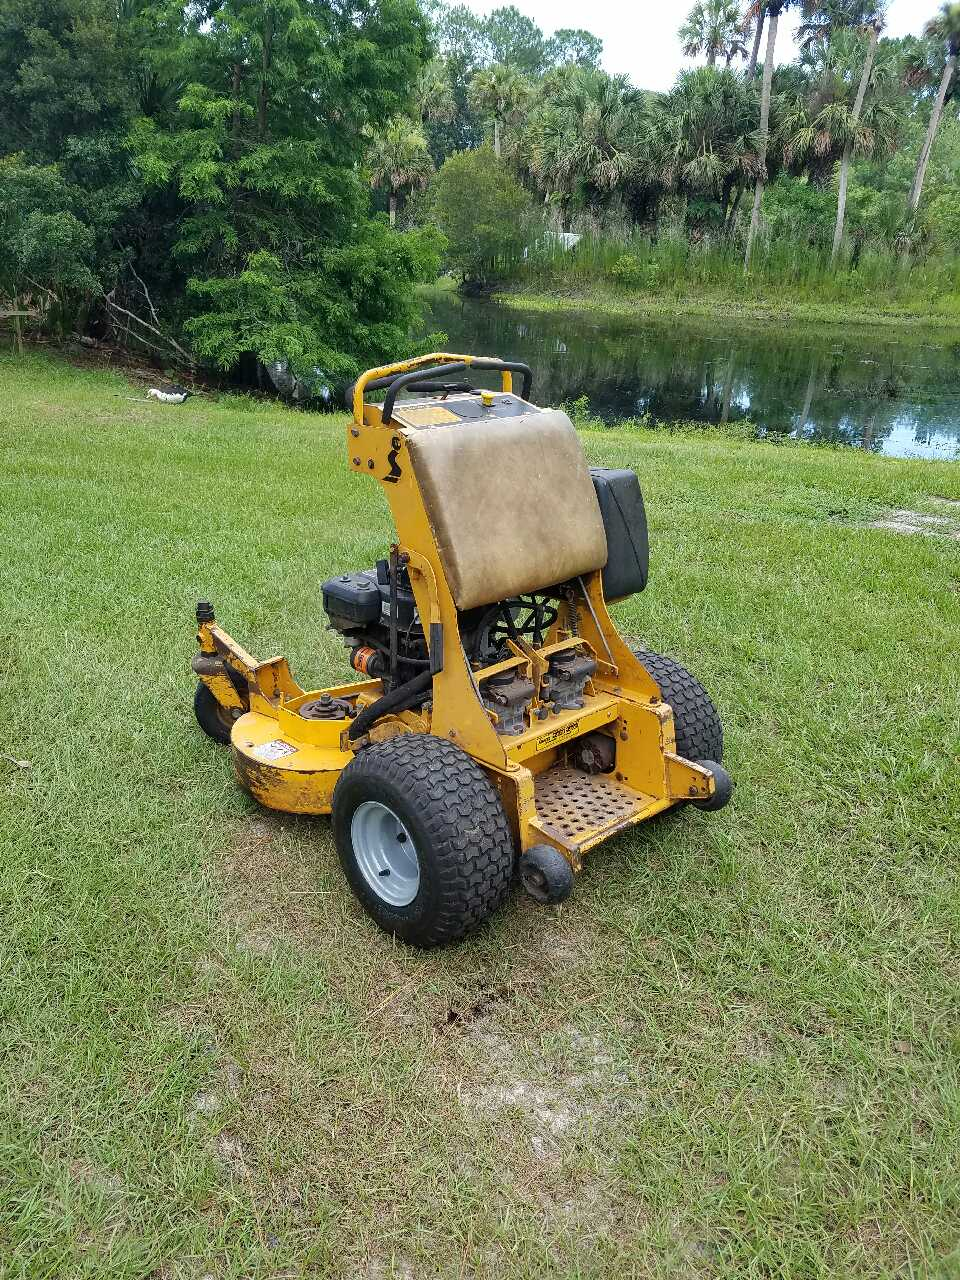 Riding Lawn Mower Paint : Letgo factory repaint with life time in tuscawilla fl